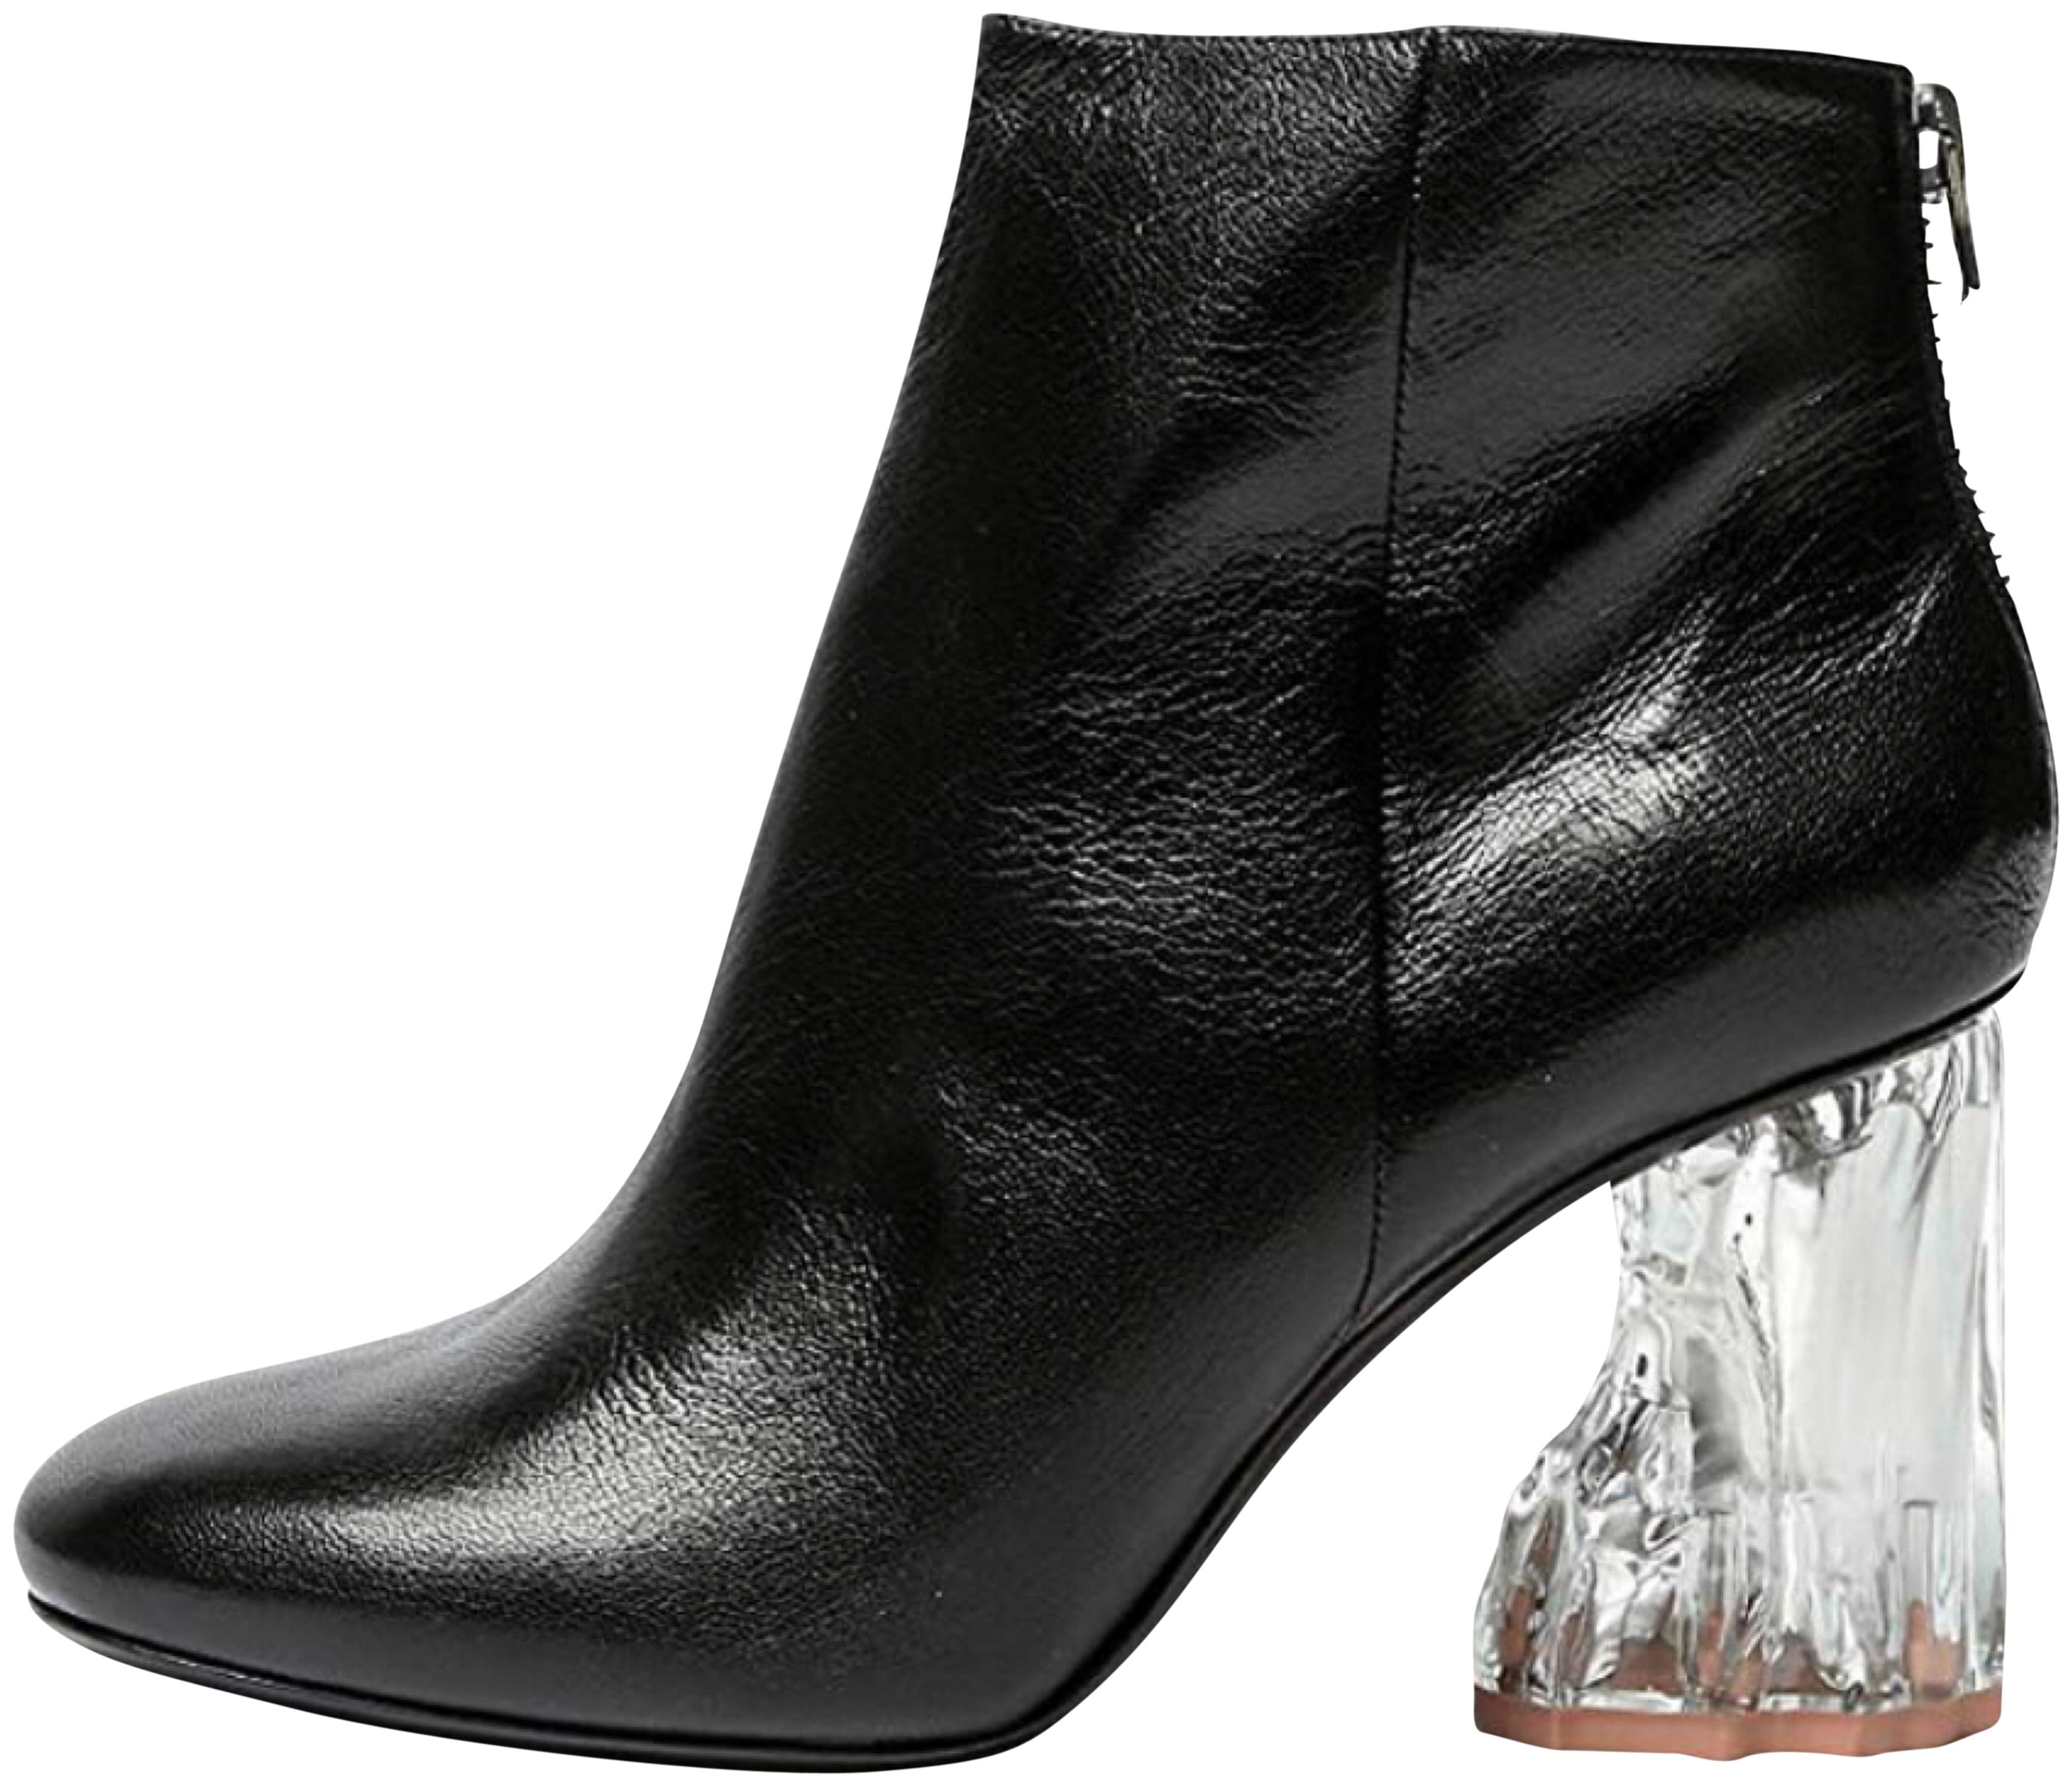 Acne Studios Ora with Clear Heels Boots/Booties Size EU 38 (Approx. US 8) Regular (M, B)